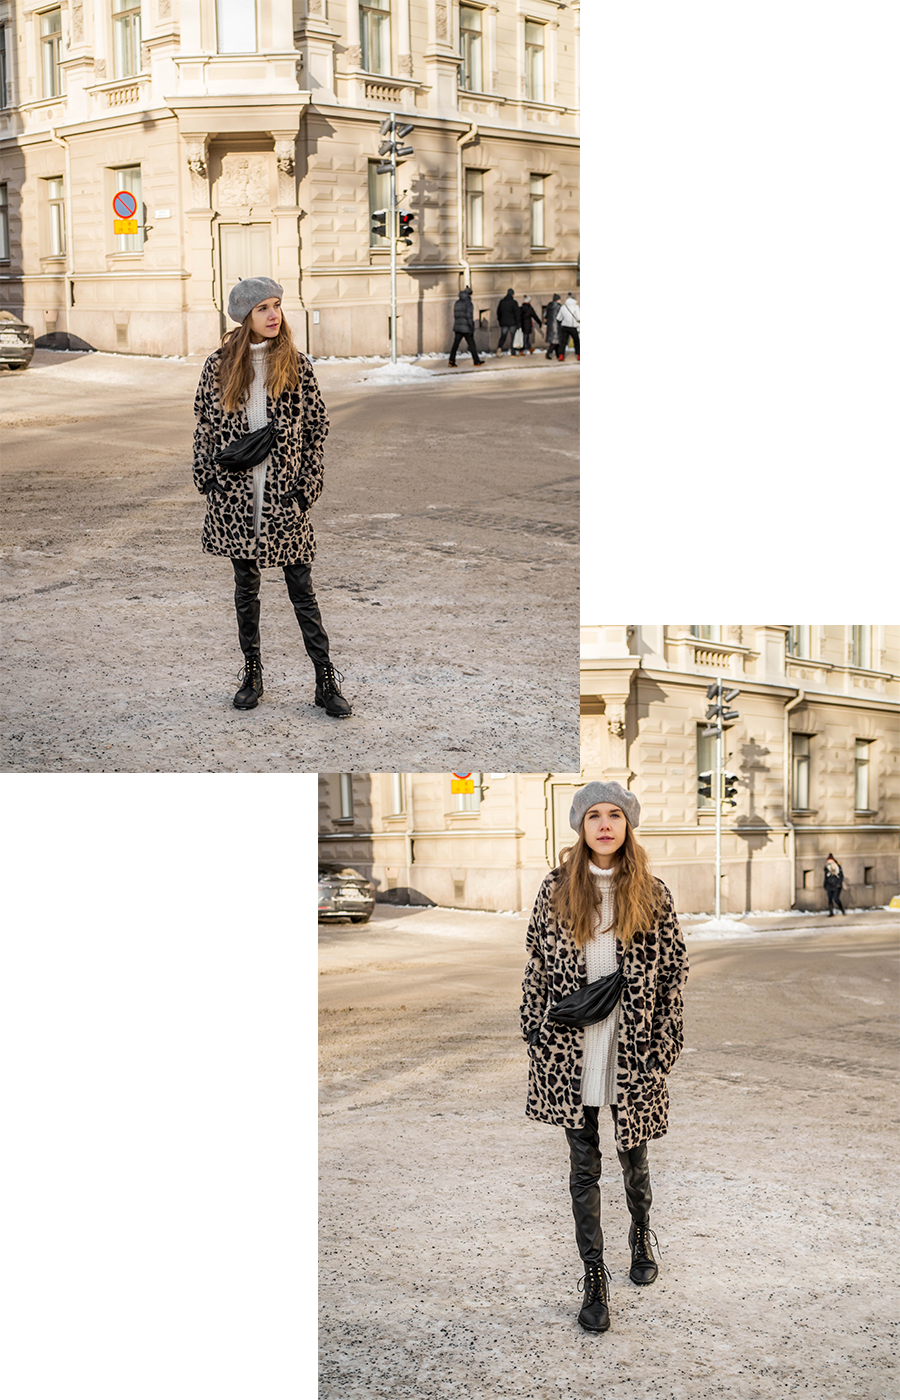 Inspiraatiota talvipukeutumiseen: leoparditakki // Winter fashion inspiration: leopard coat